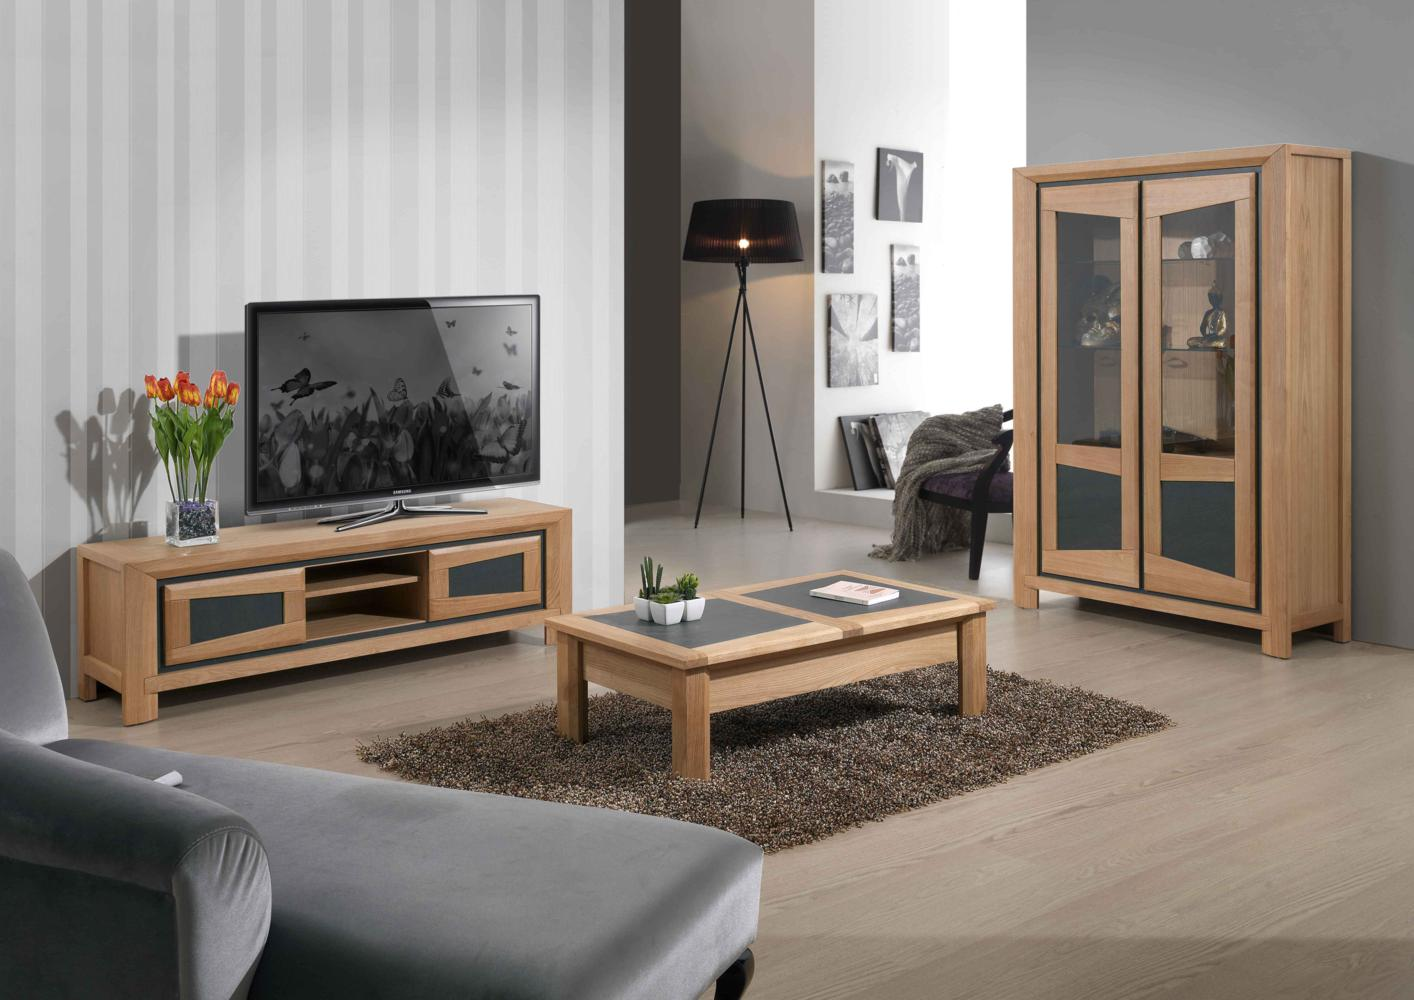 meubles de salon en bois meubles de salon en bois chene. Black Bedroom Furniture Sets. Home Design Ideas